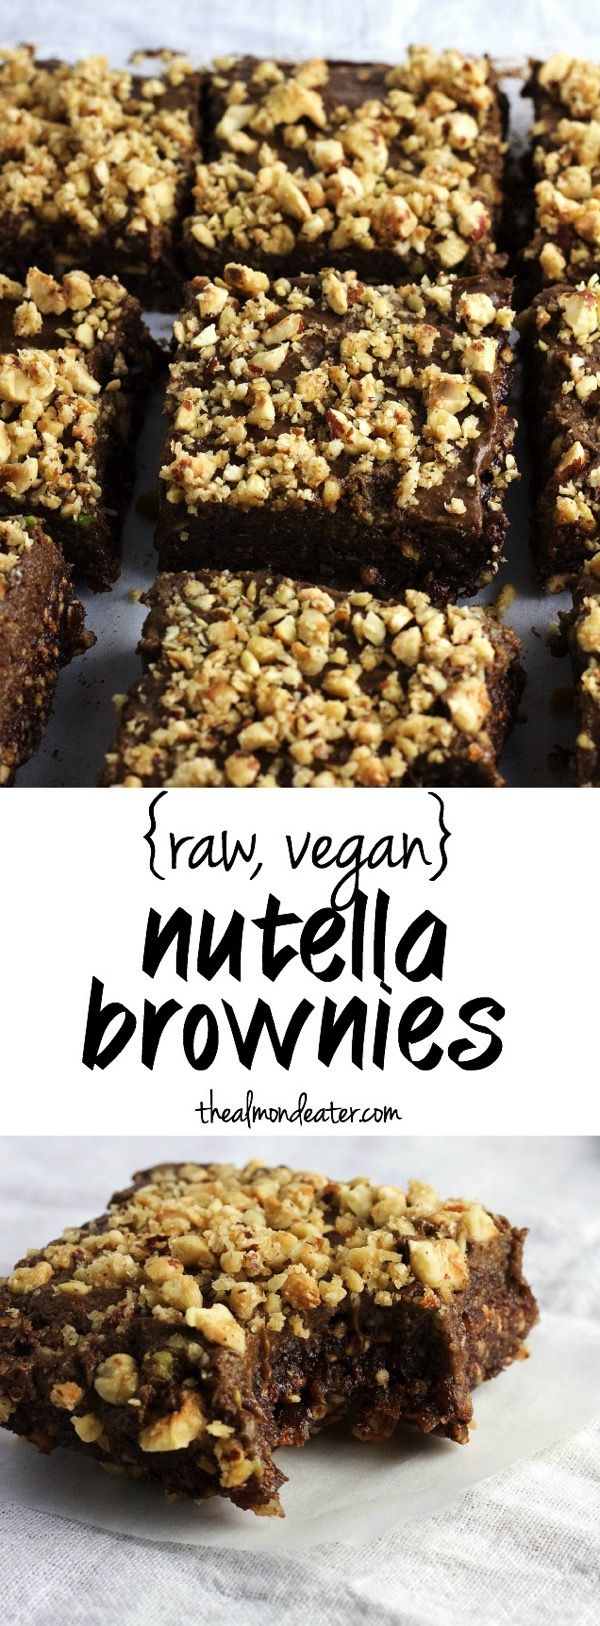 """Vegan Nutella Brownies 